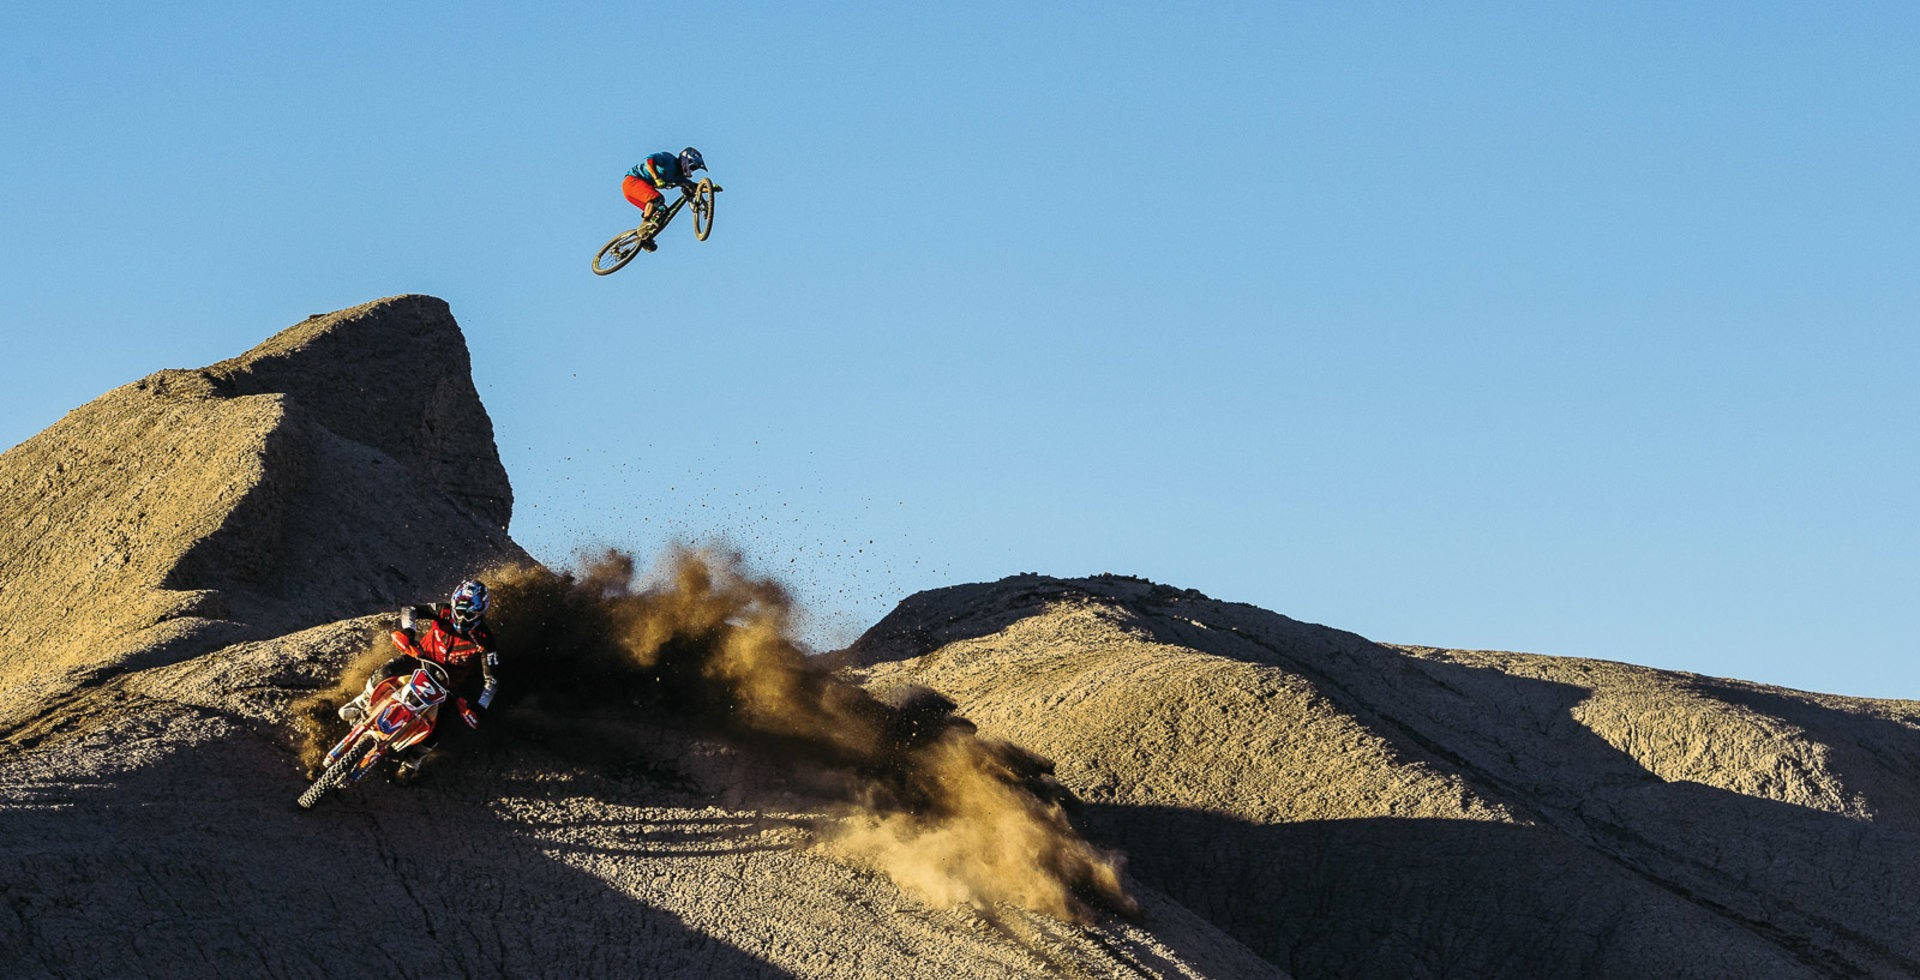 What happens when a professional mountain biker and moto rally racer join forces in the desert? An all-out throwdown on every feature in sight. Darren sends a gap that took a few hours to build, while Ricky roosts a berm that took a few seconds to destroy.